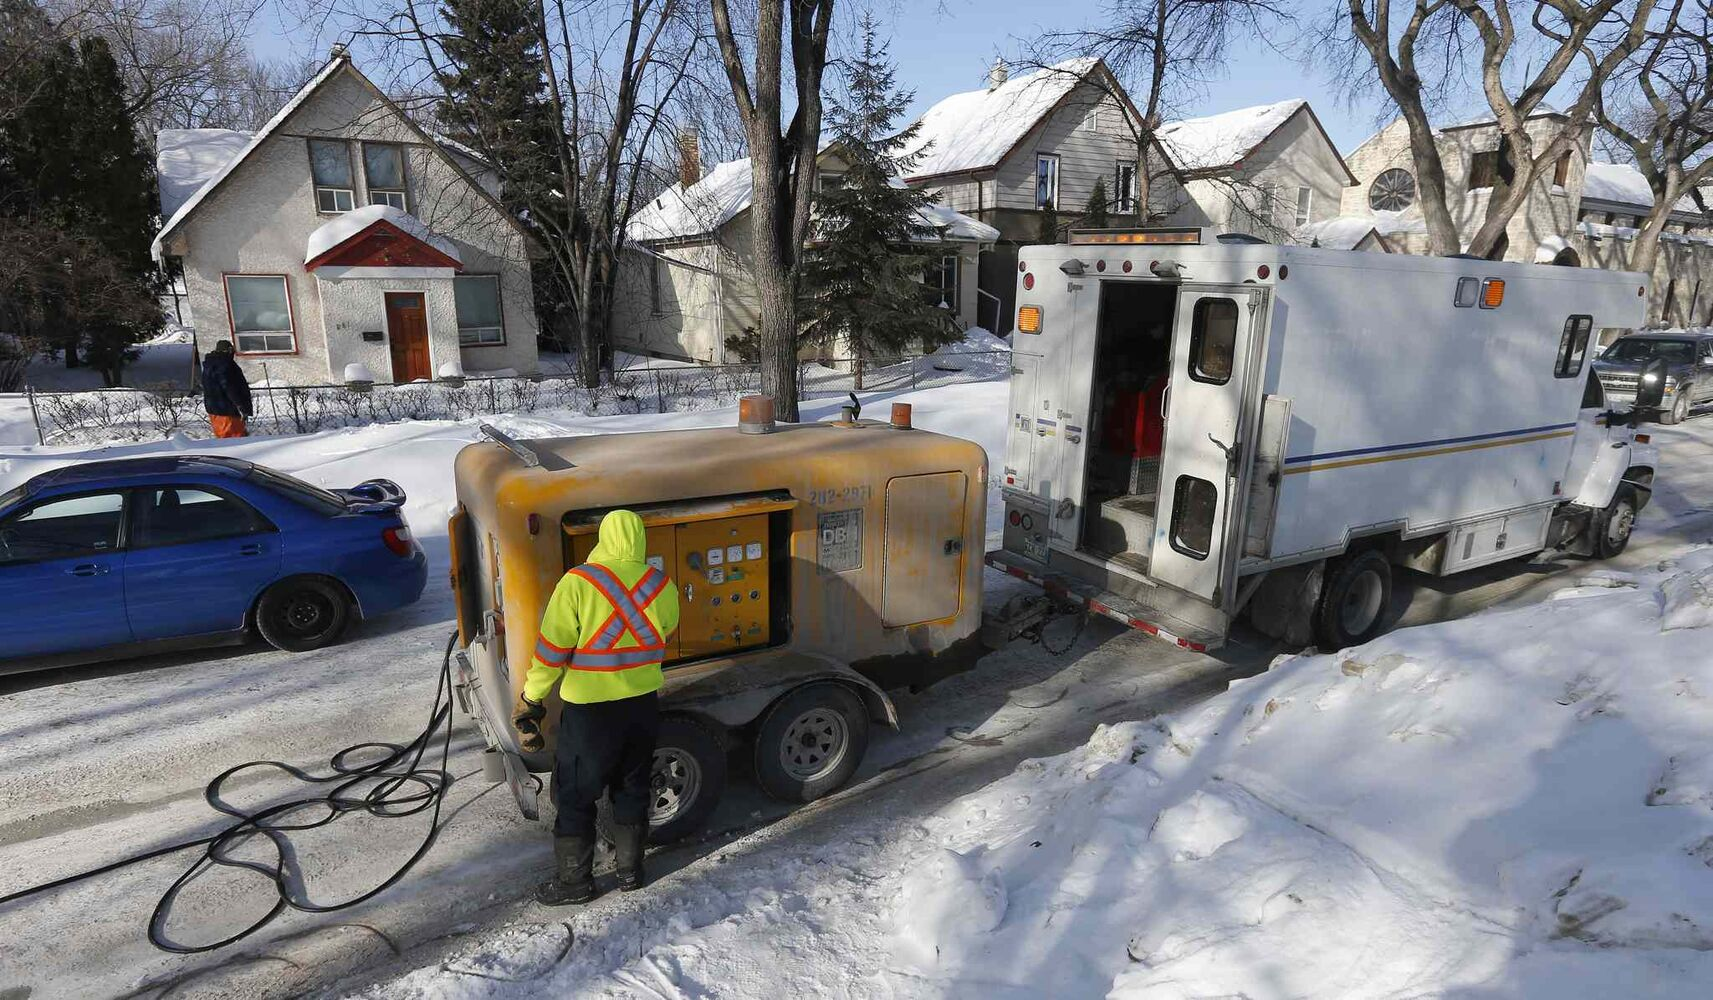 With freezing weather comes frozen pipes. Hundreds of Winnipeggers have been without water as they wait for the city to heat up frozen water lines like this one under Mulvey Avenue.  (KEN GIGLIOTTI / WINNIPEG FREE PRESS)